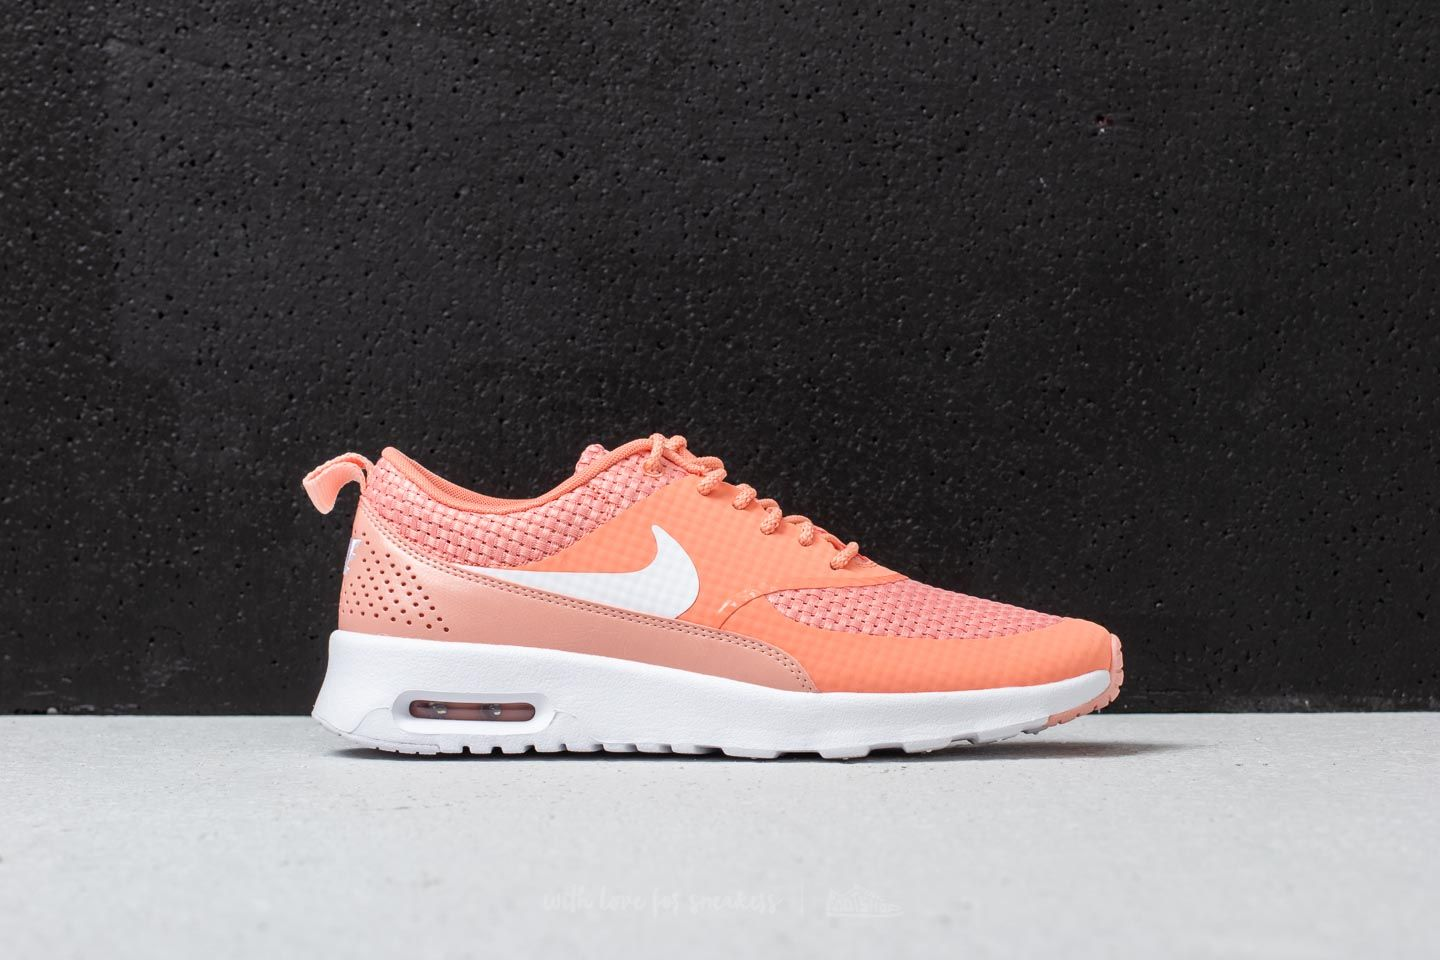 factory price 9ed2a 44153 Nike Wmns Air Max Thea Premium Crimson Bliss  White at a great price 73 €